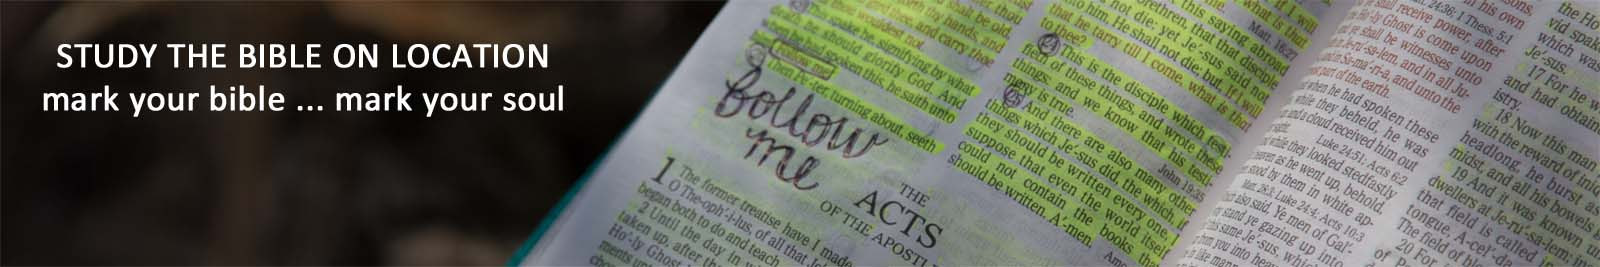 Study the Bible header image